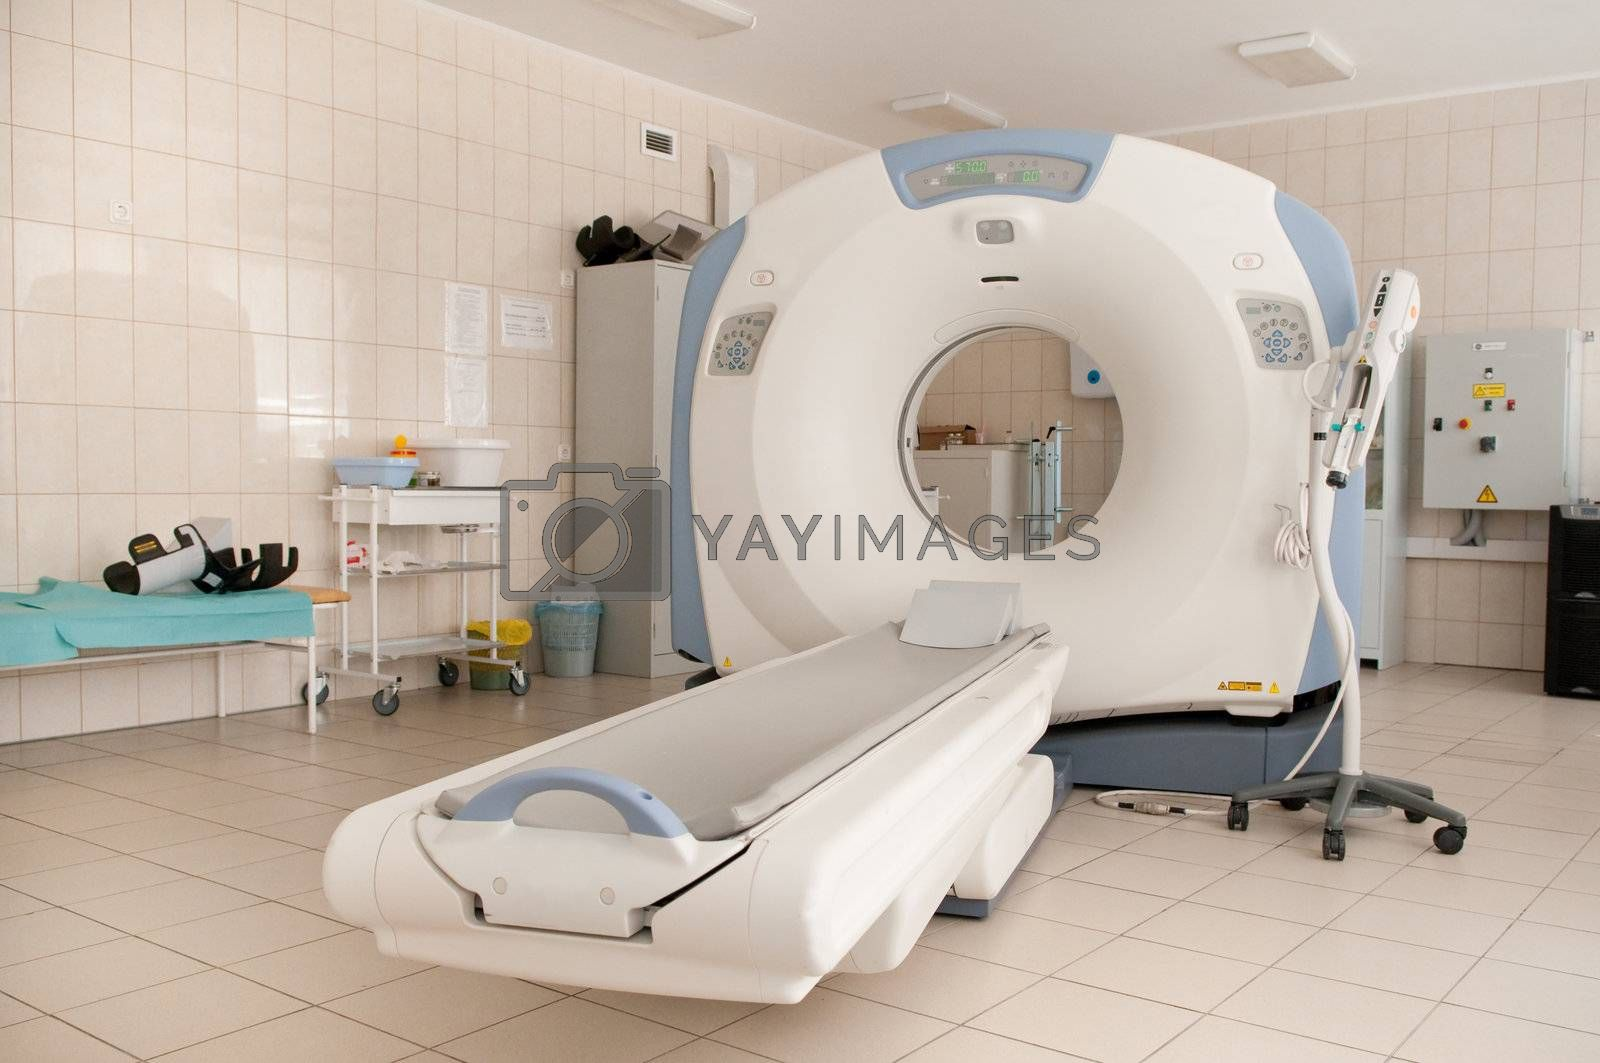 Royalty free image of CAT Scan Machine  by alexei171